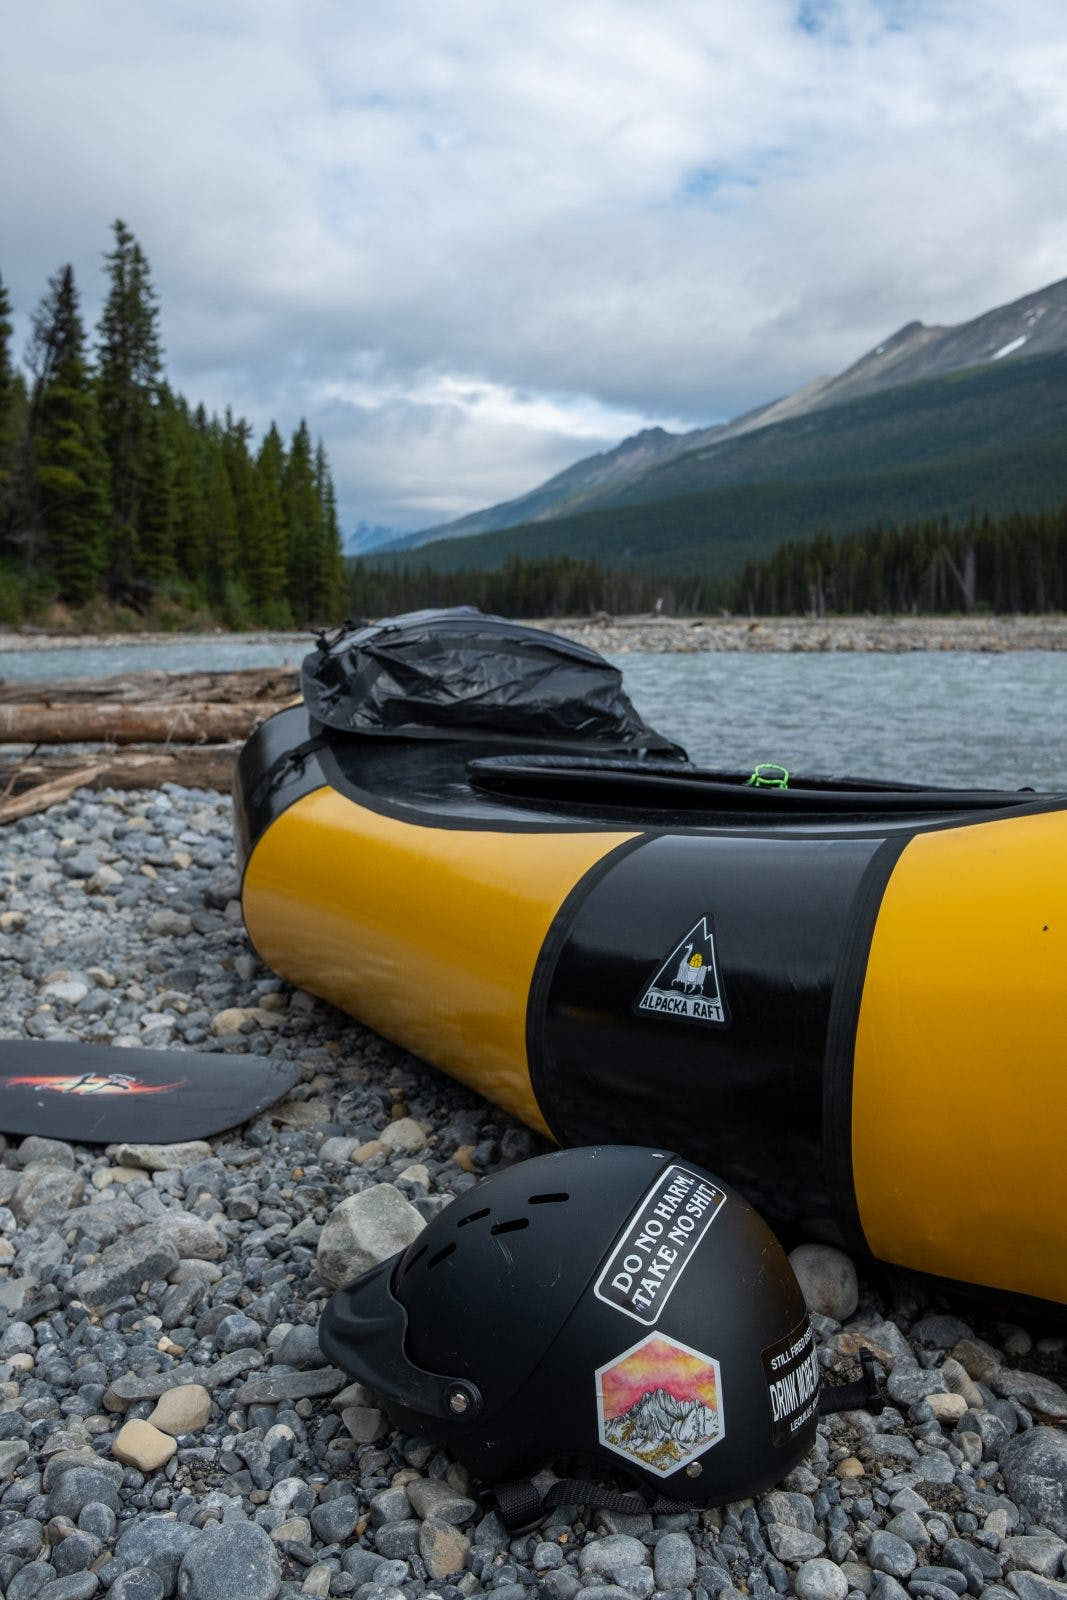 Coburn's 'bumblebee' Narwhal, ready to get on the river. Photo by Coburn Brown